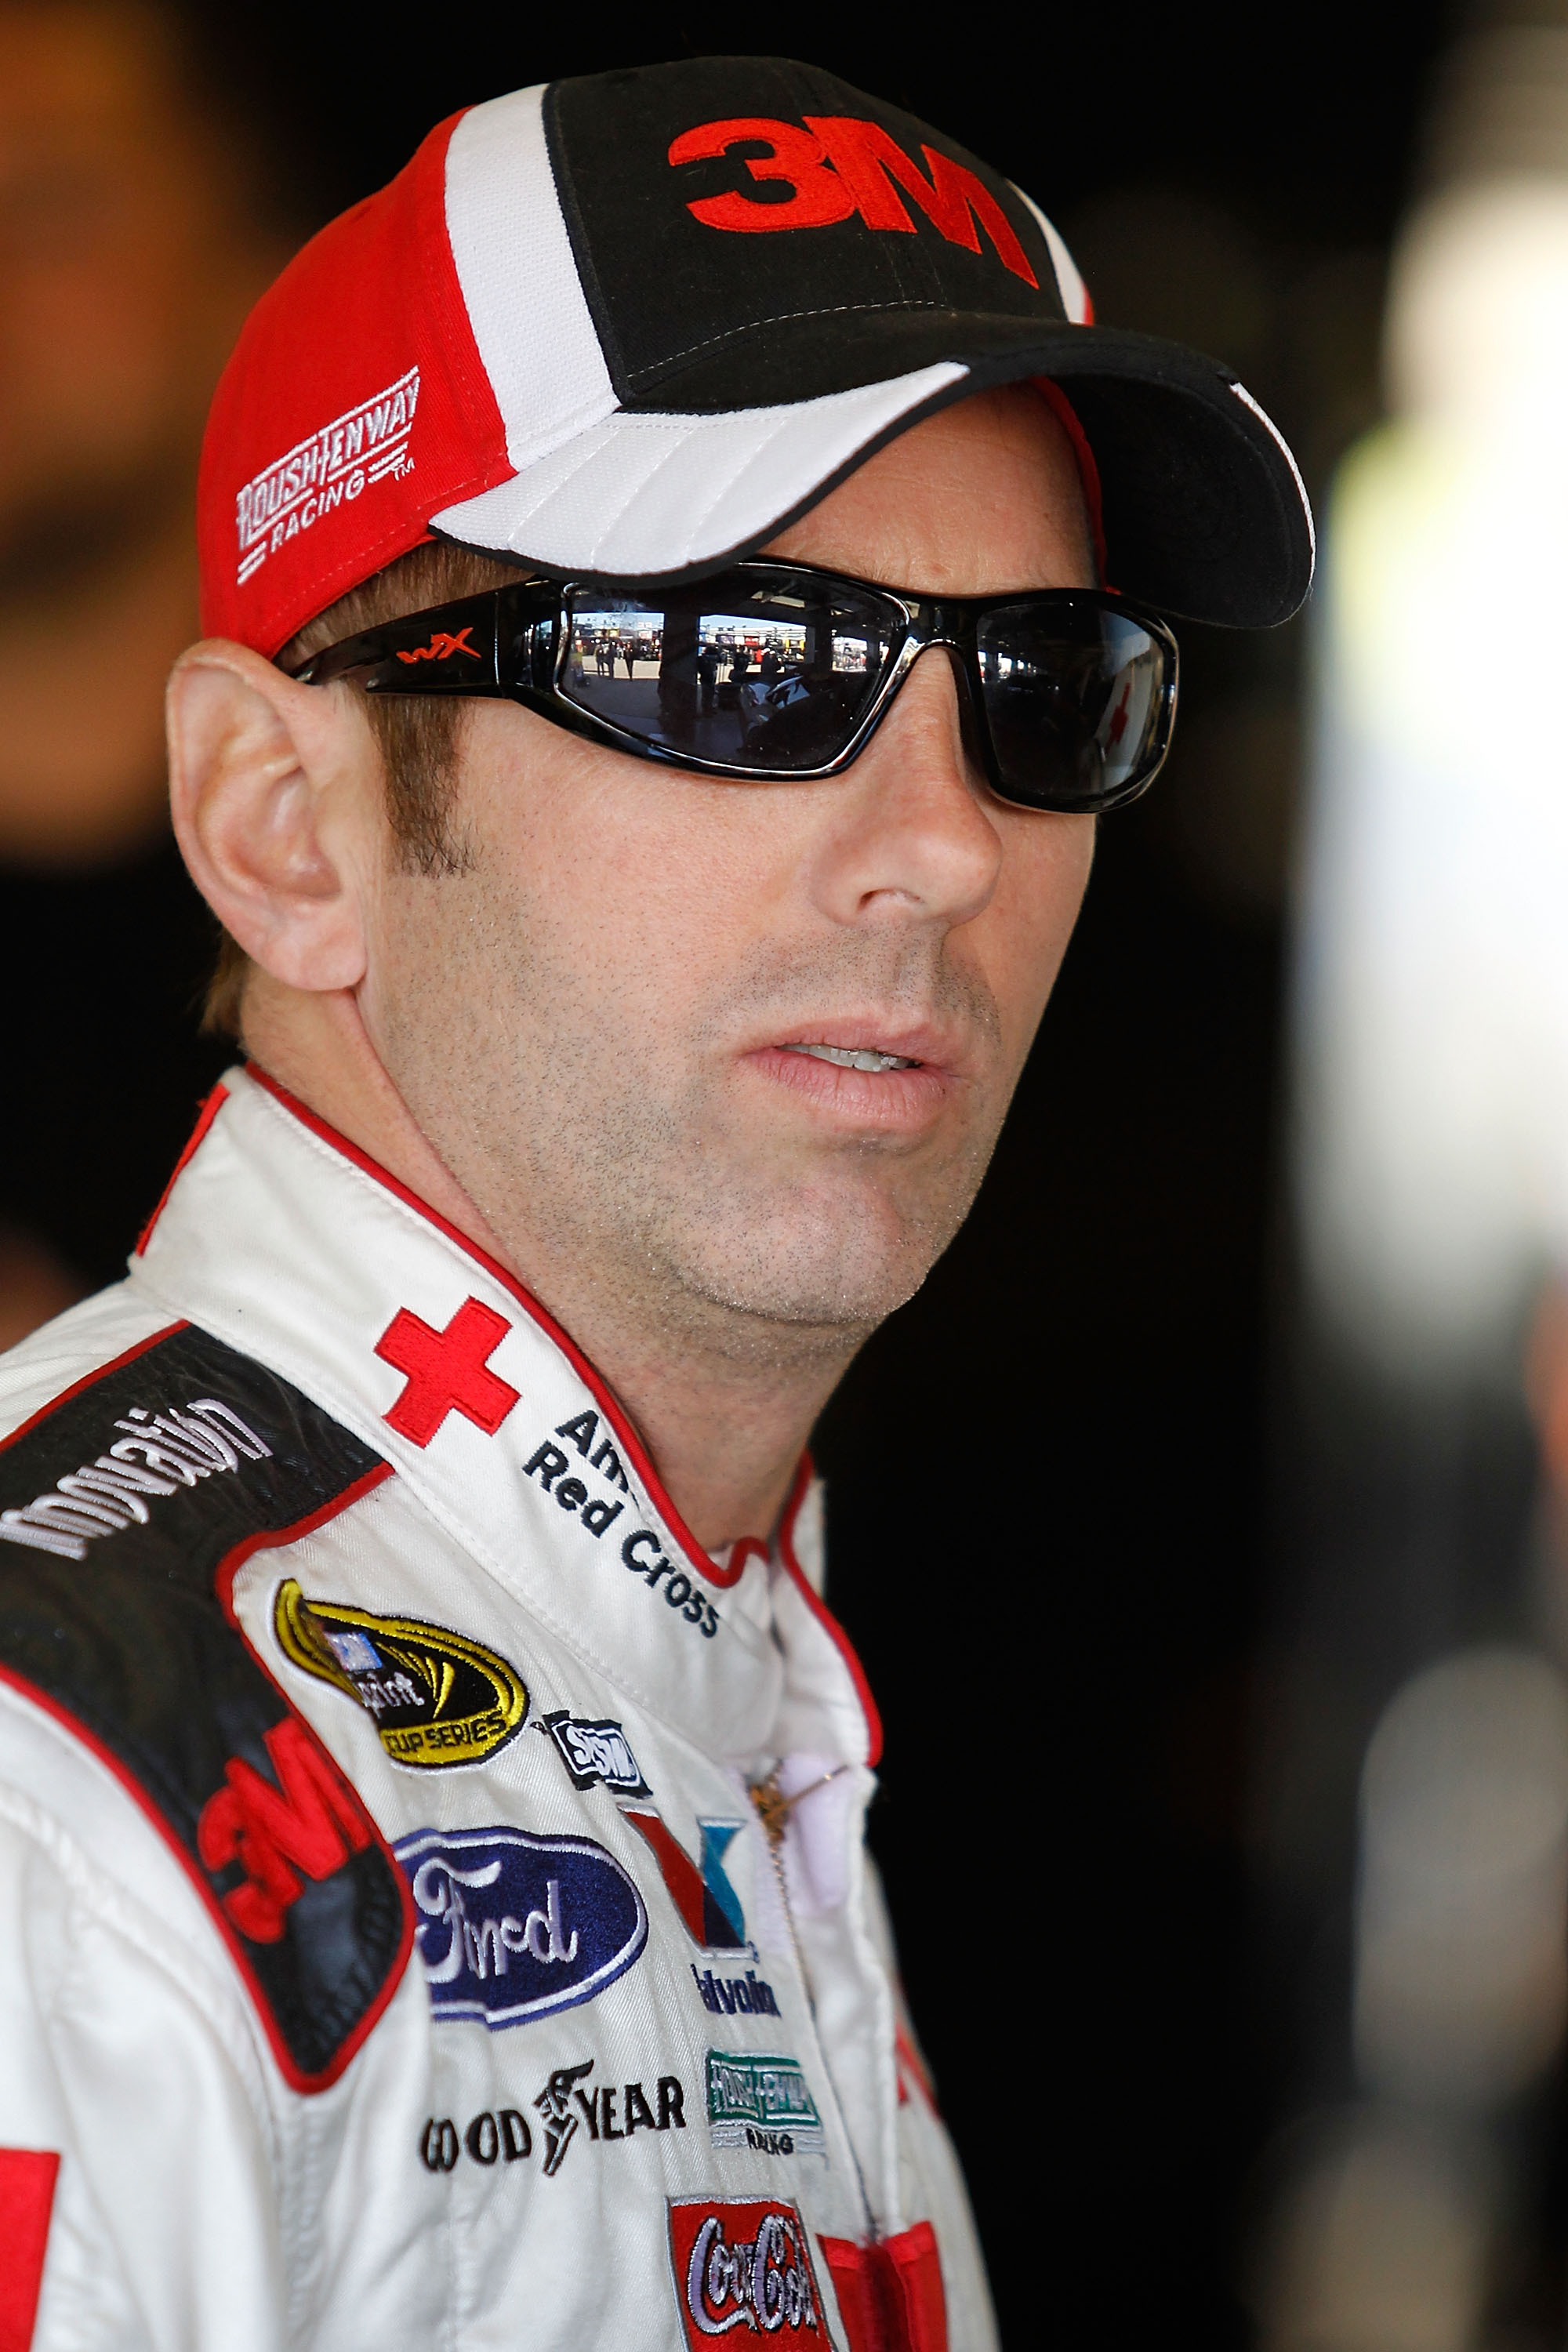 FORT WORTH, TX - NOVEMBER 06:  Greg Biffle, driver of the #16 American Red Cross Ford, stands in the garage area during practice for the NASCAR Sprint Cup Series AAA Texas 500 at Texas Motor Speedway on November 6, 2010 in Fort Worth, Texas.  (Photo by To